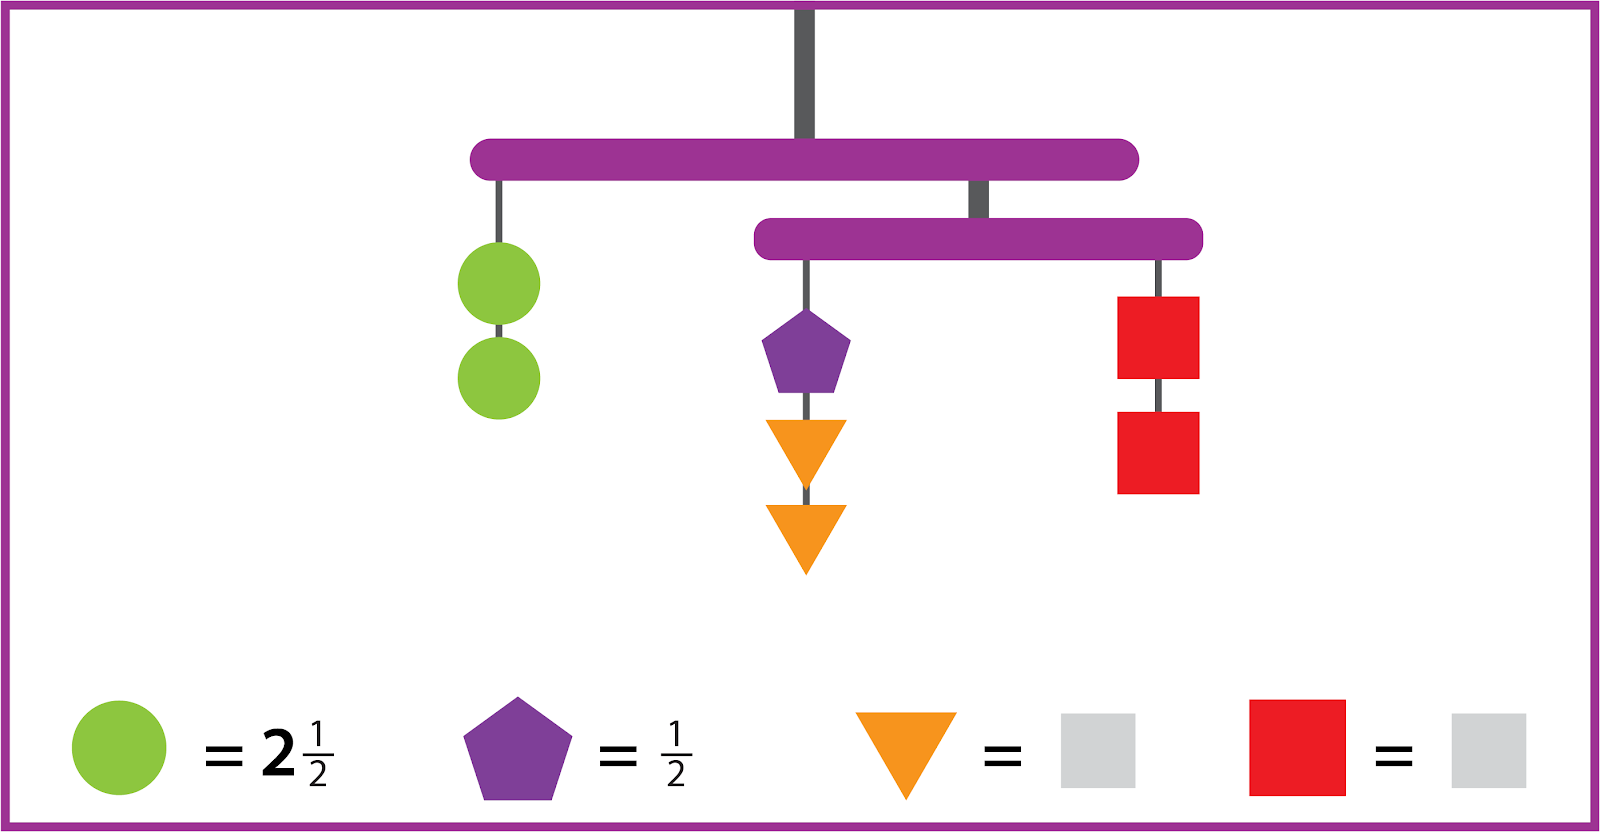 A balanced mobile with 3 strings. The two strings on the right have the same combined value as the string on the left. The left string has 2 circles. The middle string has 1 pentagon and 2 triangles. The right string has 2 squares. The value of the circle is 2 and 1-half. The value of the pentagon is 1-half. The values of the other shapes are unknown.